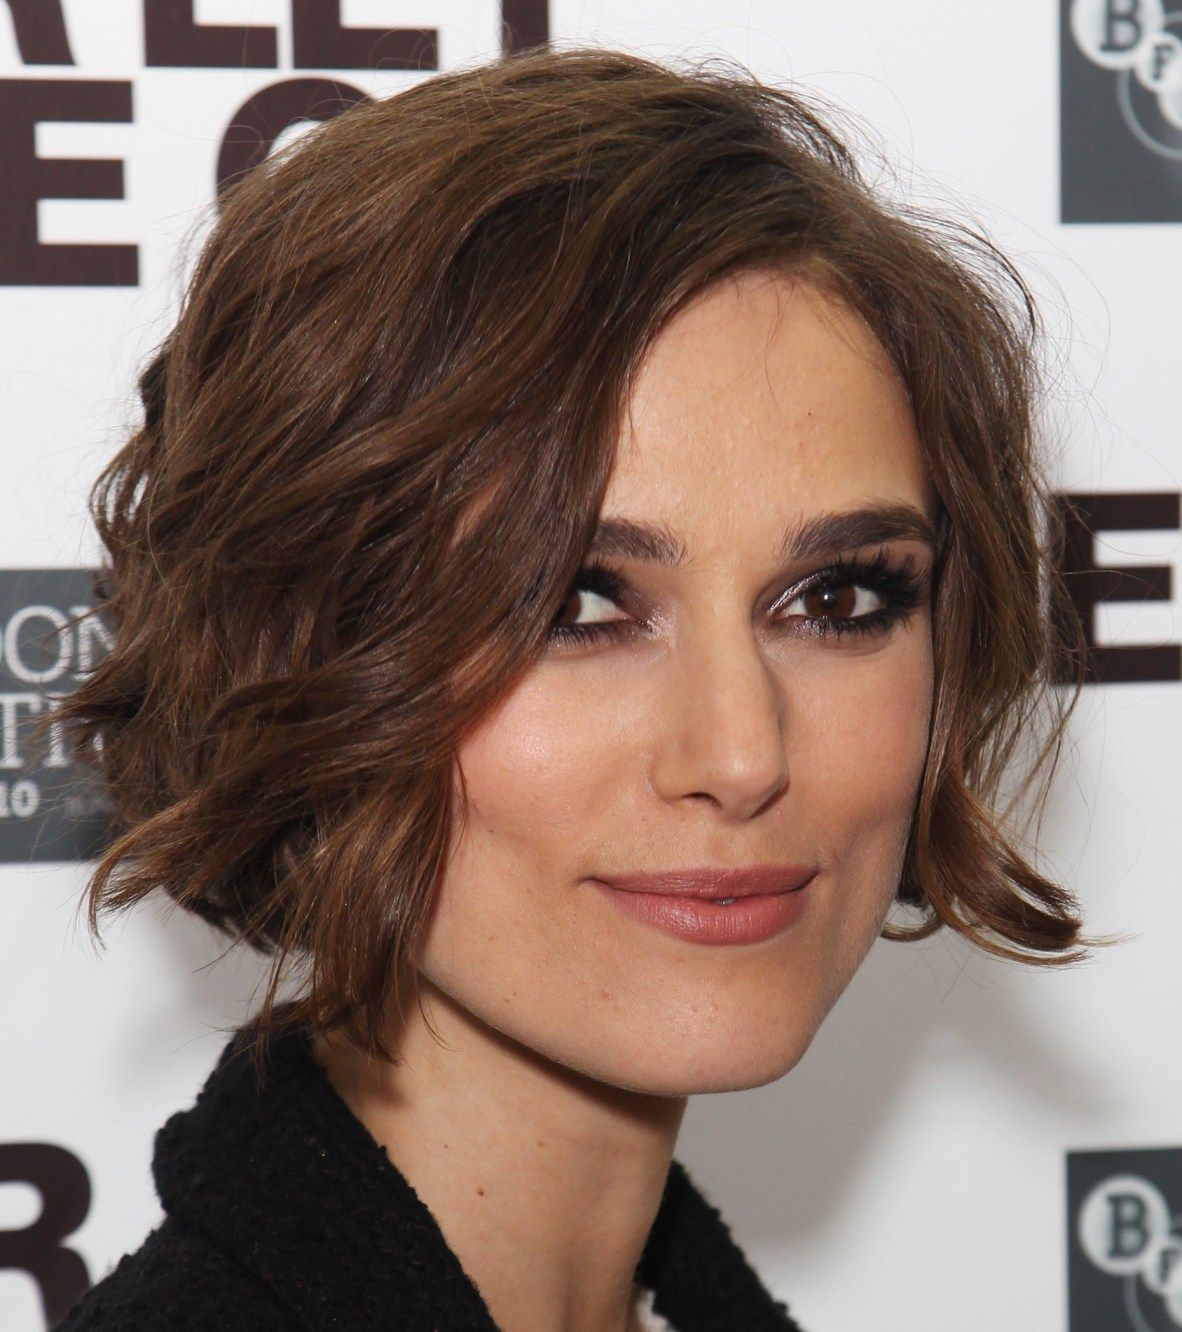 50 best hairstyles for square faces rounding the angles | wavy bobs